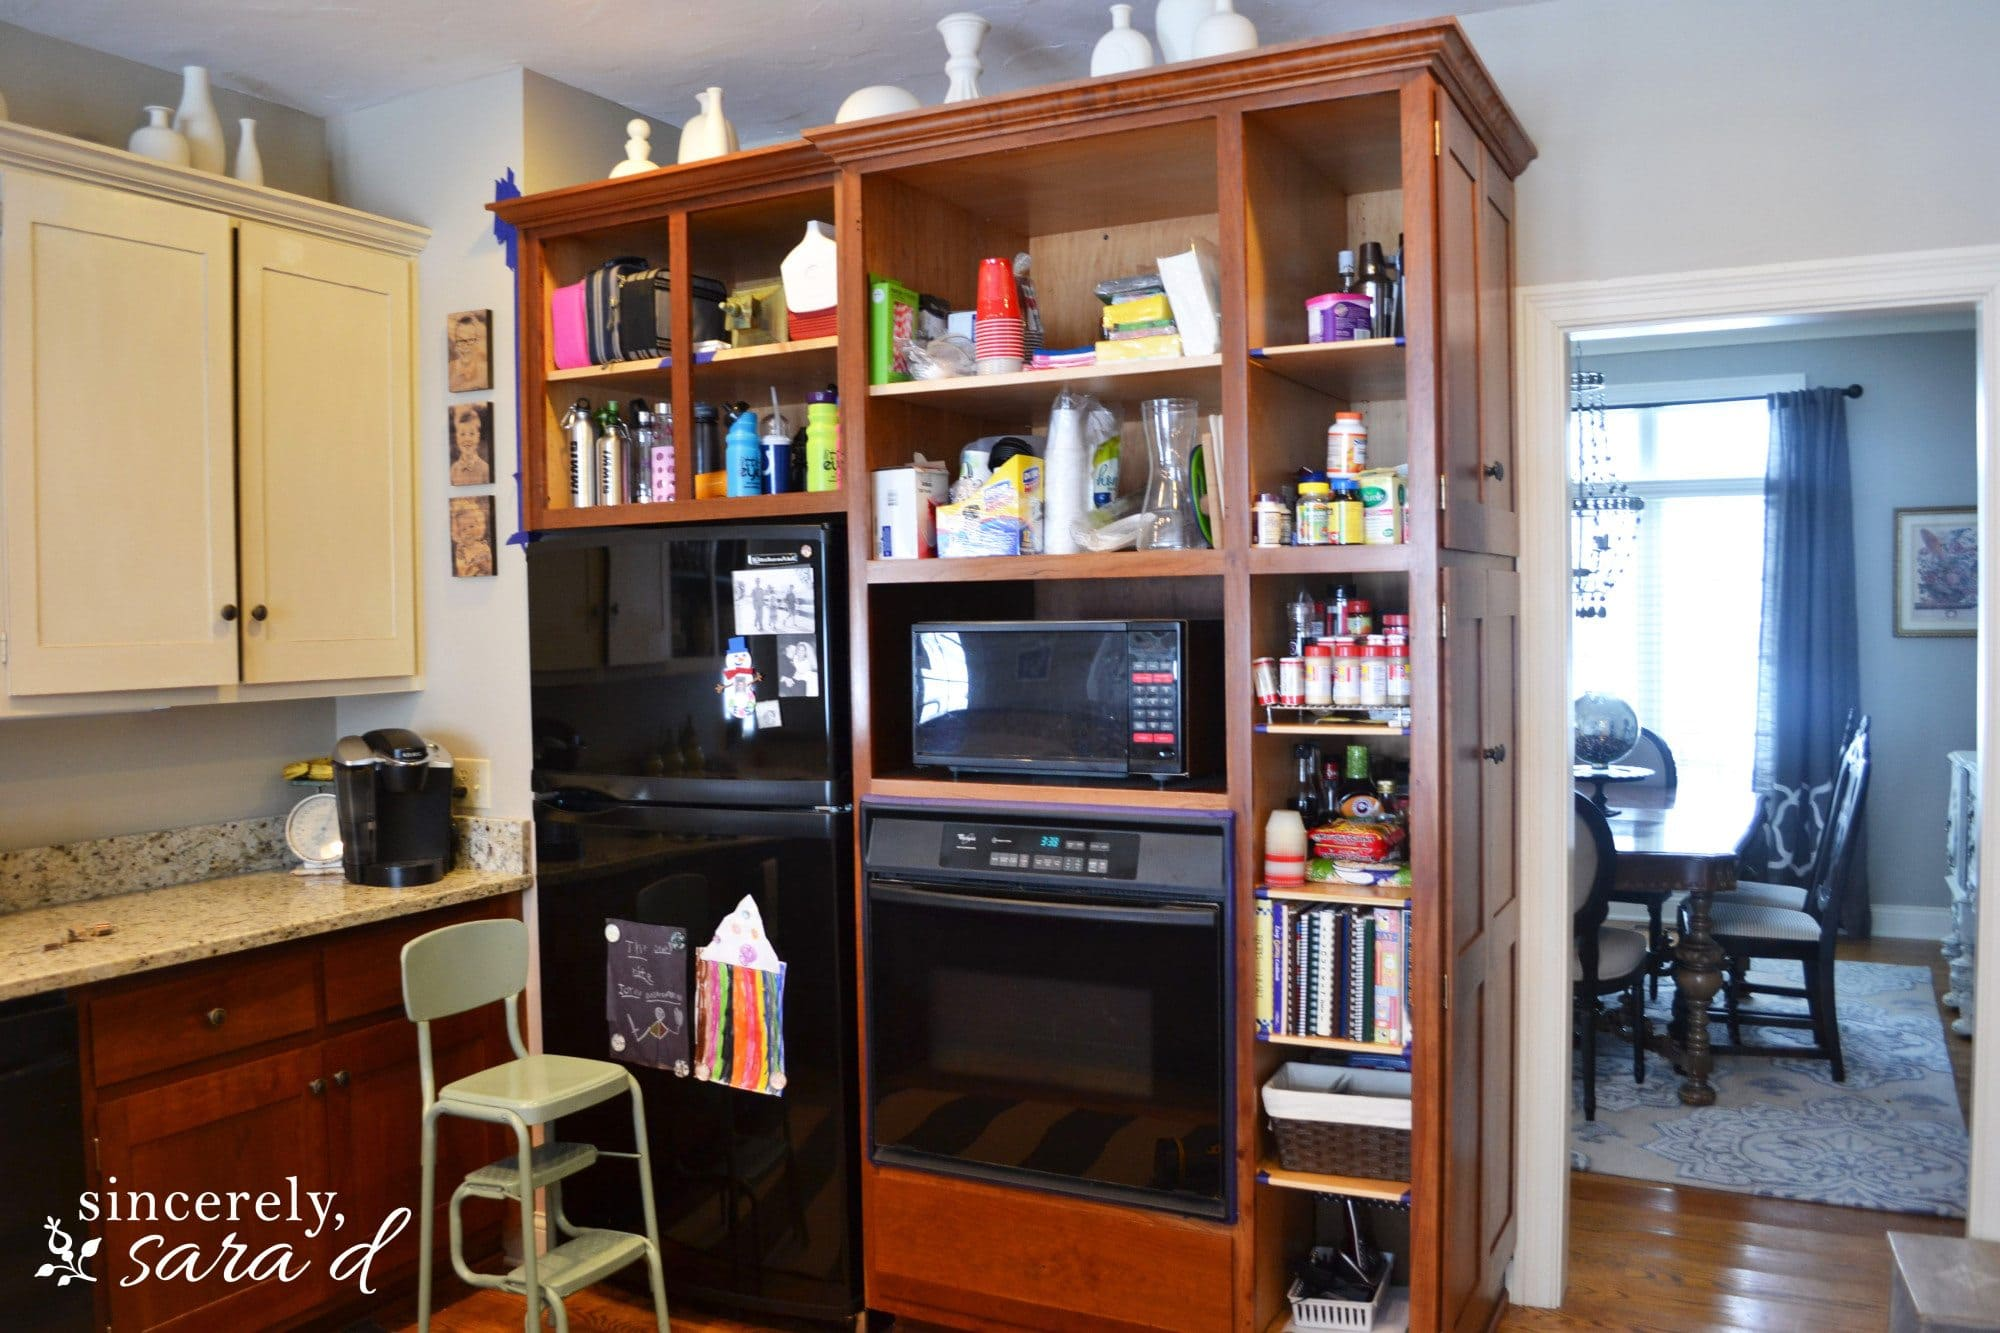 cabinets.before.11